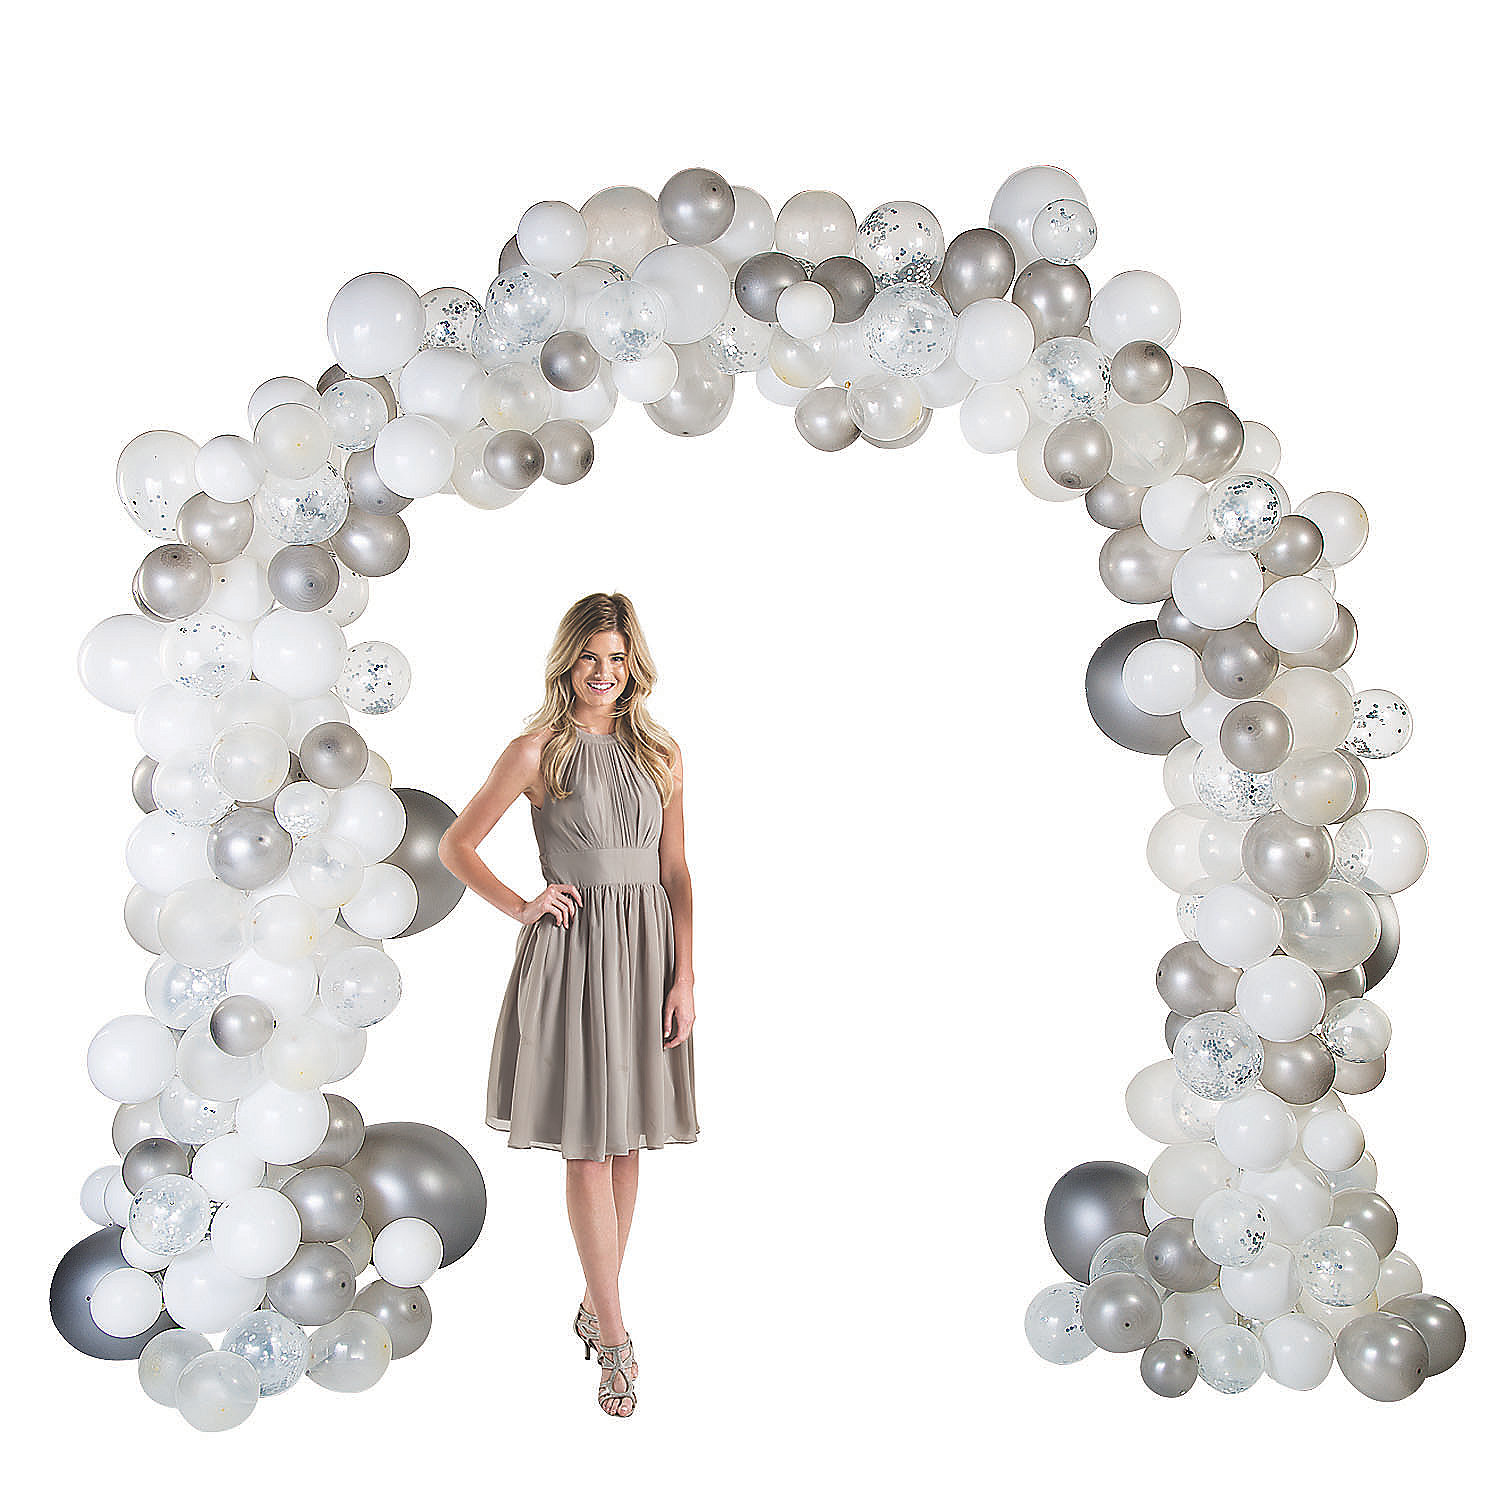 Balloon arch frame party favors ideas